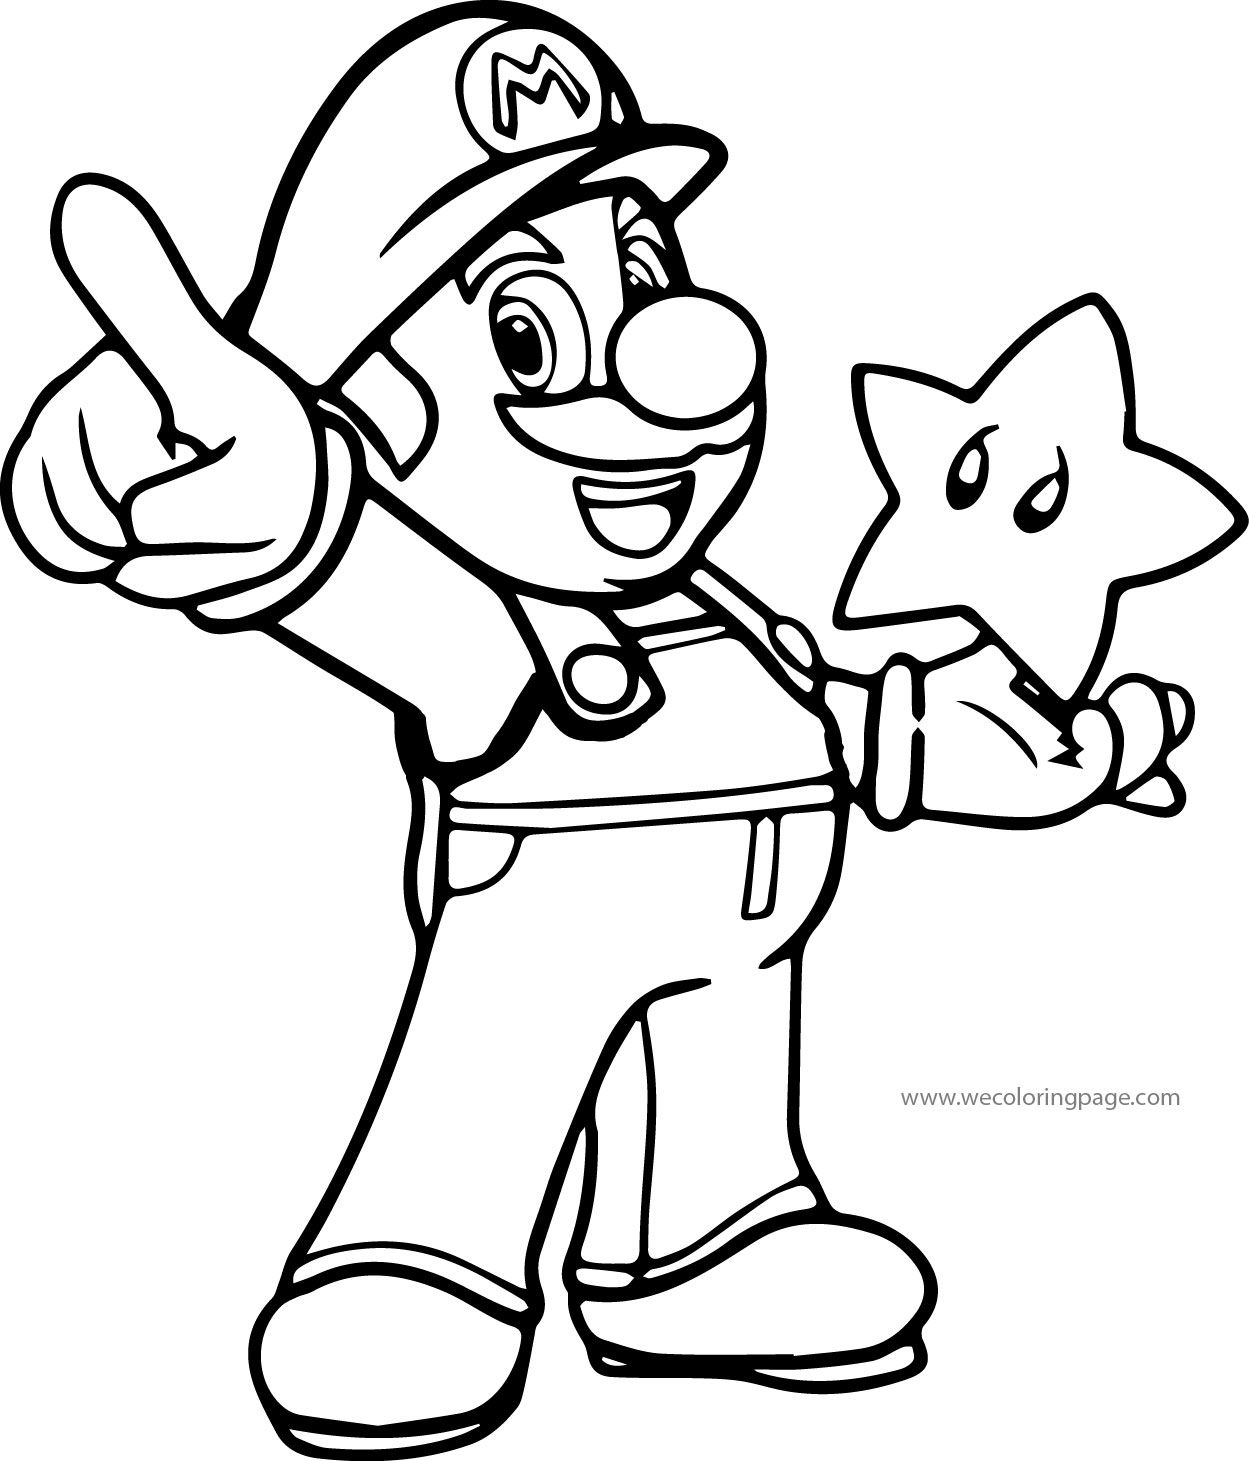 Super Mario Coloring Page Wecoloringpage Super Mario Coloring Pages Super Coloring Pages Mario Coloring Pages